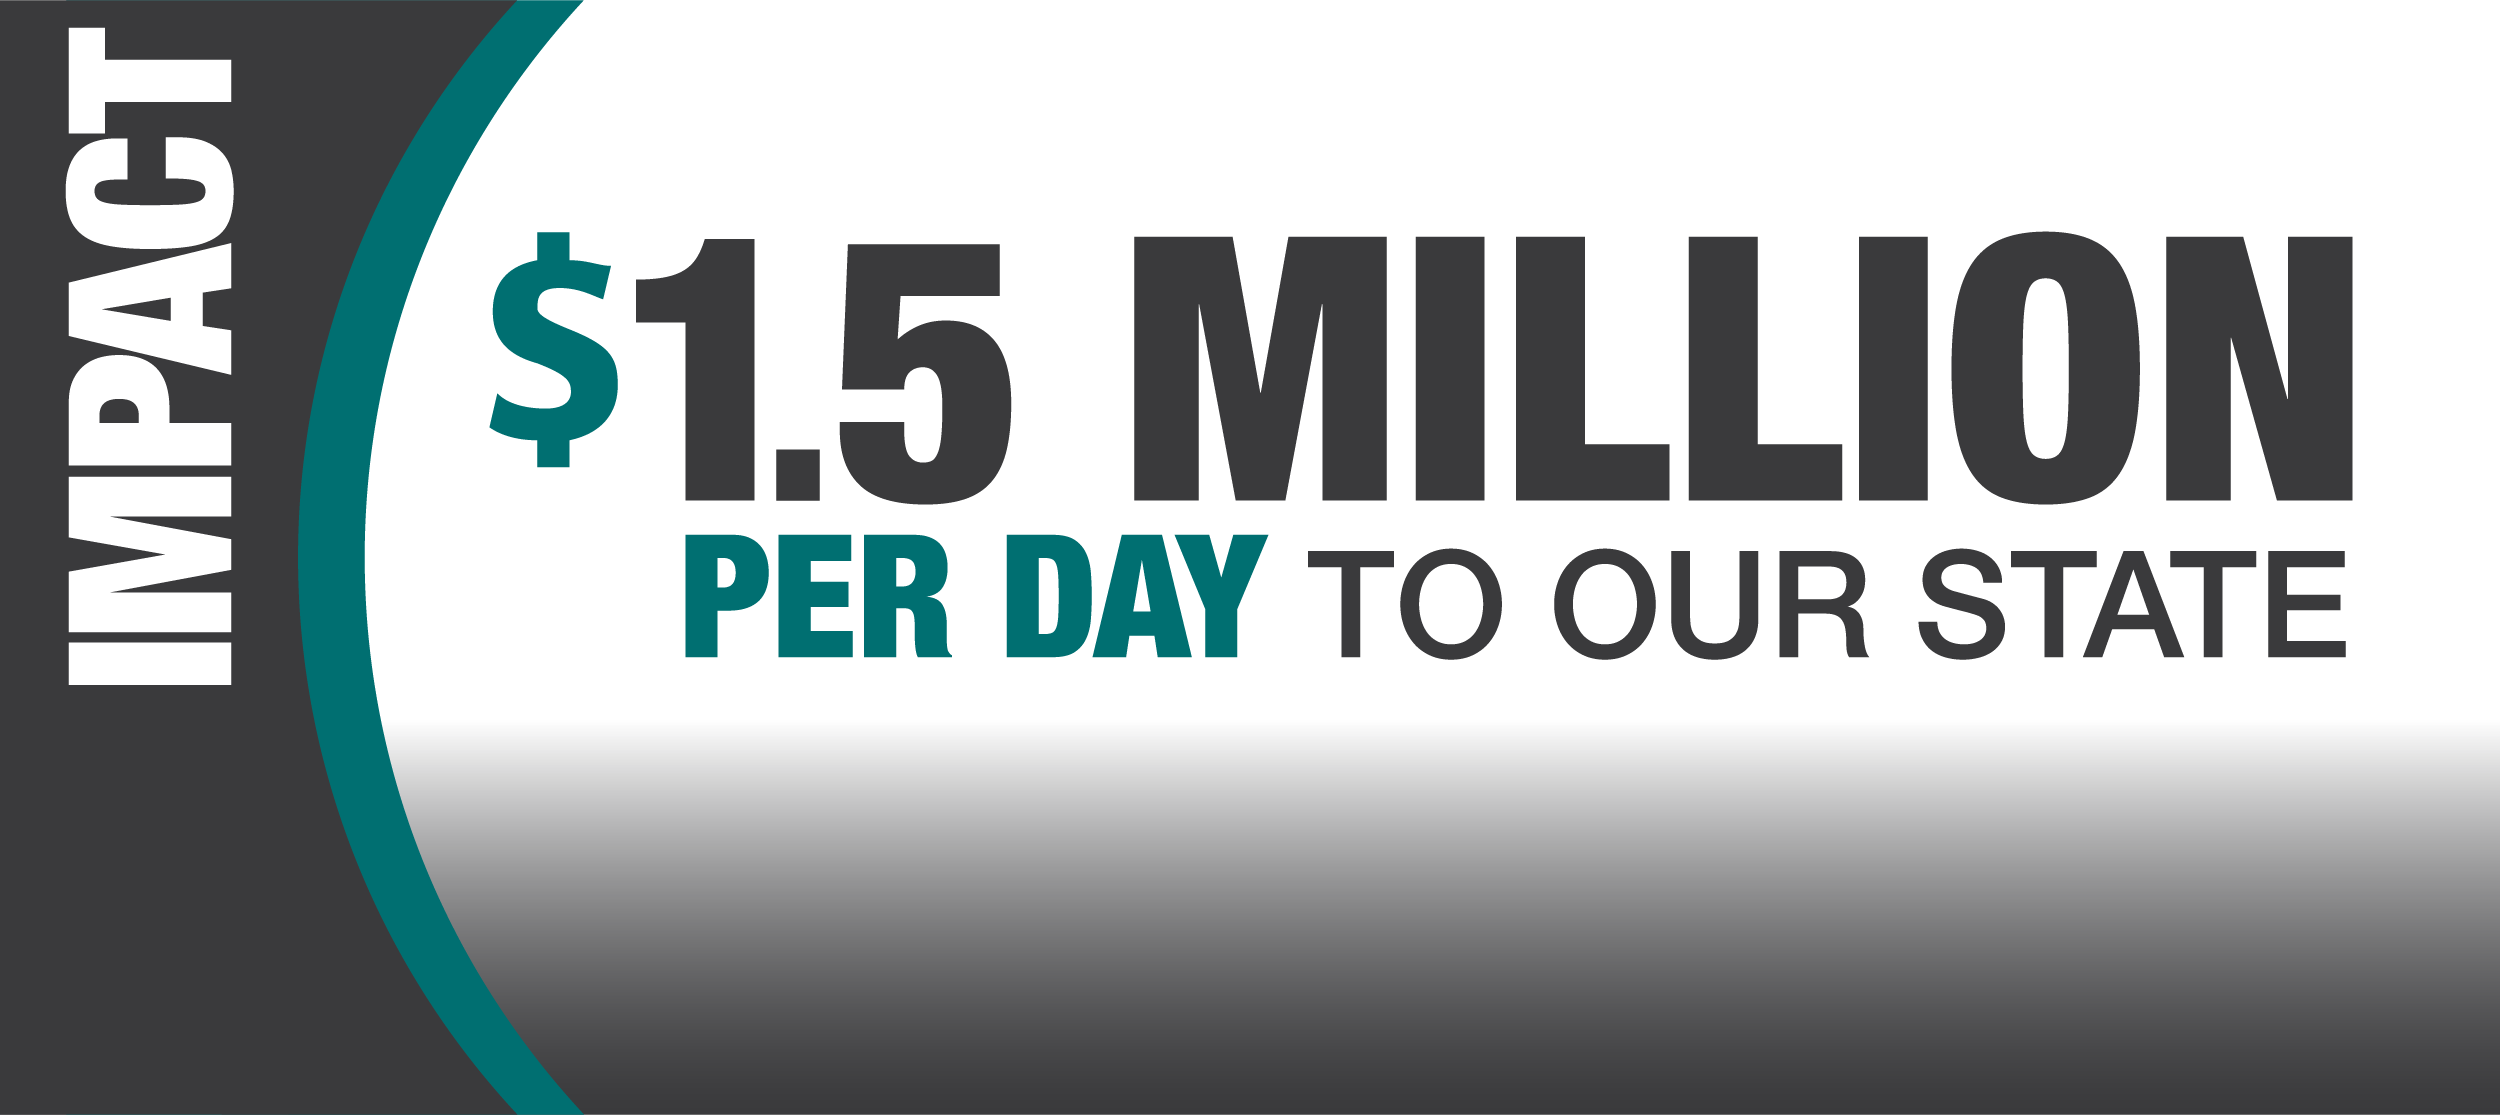 CCU contributes an economic impact of $1.5 million PER DAY to our state.